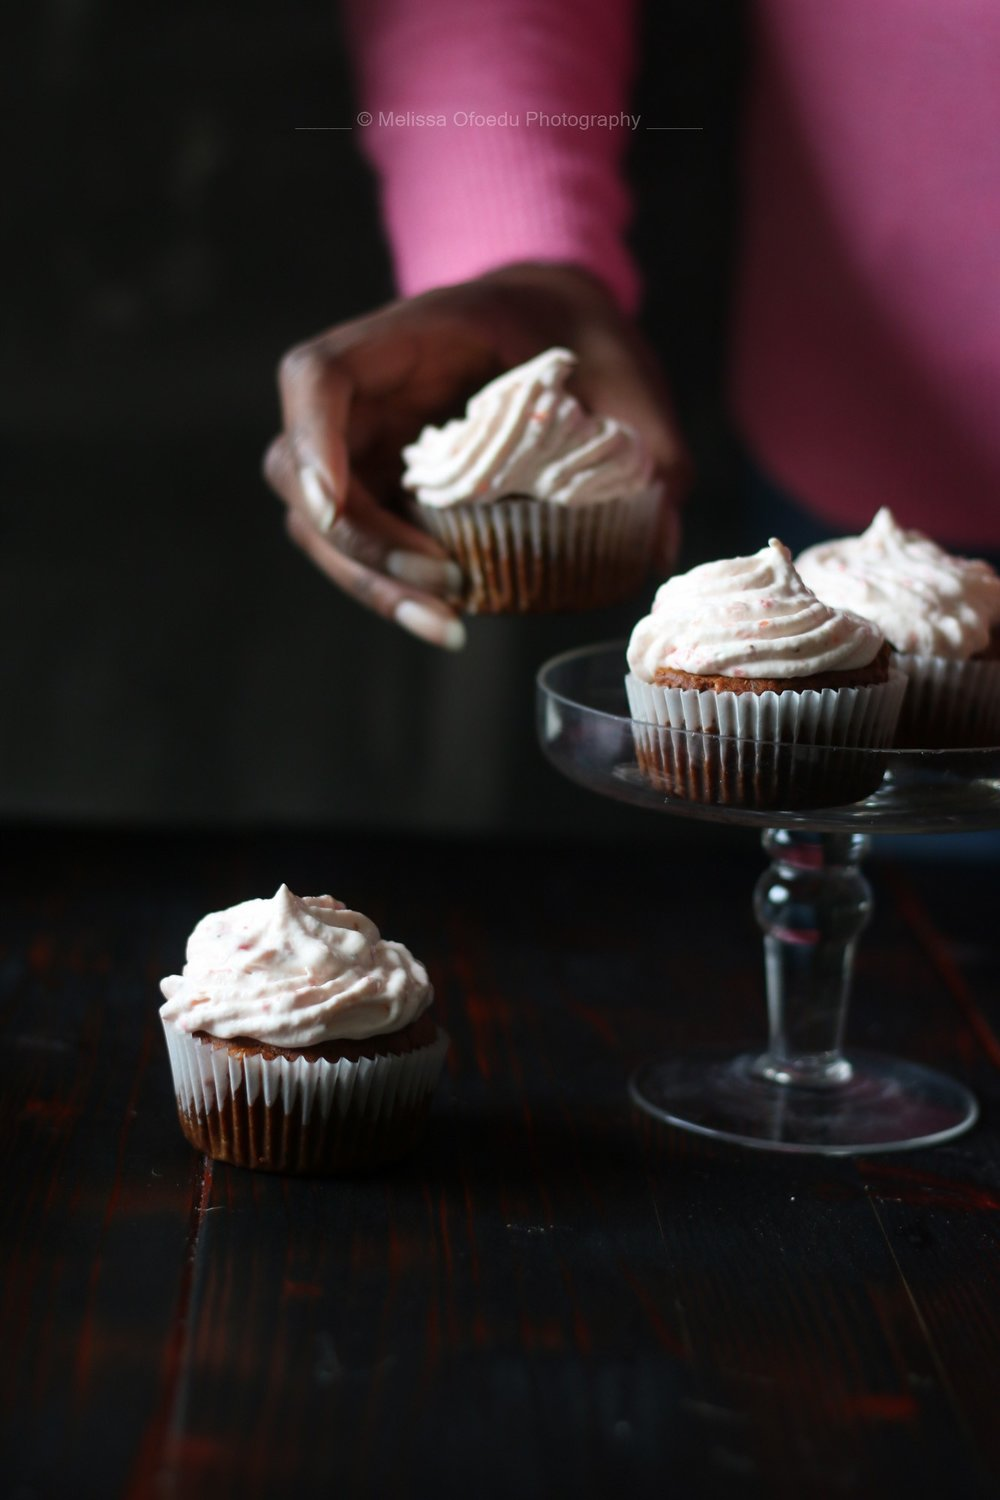 Cayenne-Pepper-Strawberry-Cupcakes-by-Melissa-Ofoedu-for-A-Sweet-Point-of-View-4.jpg